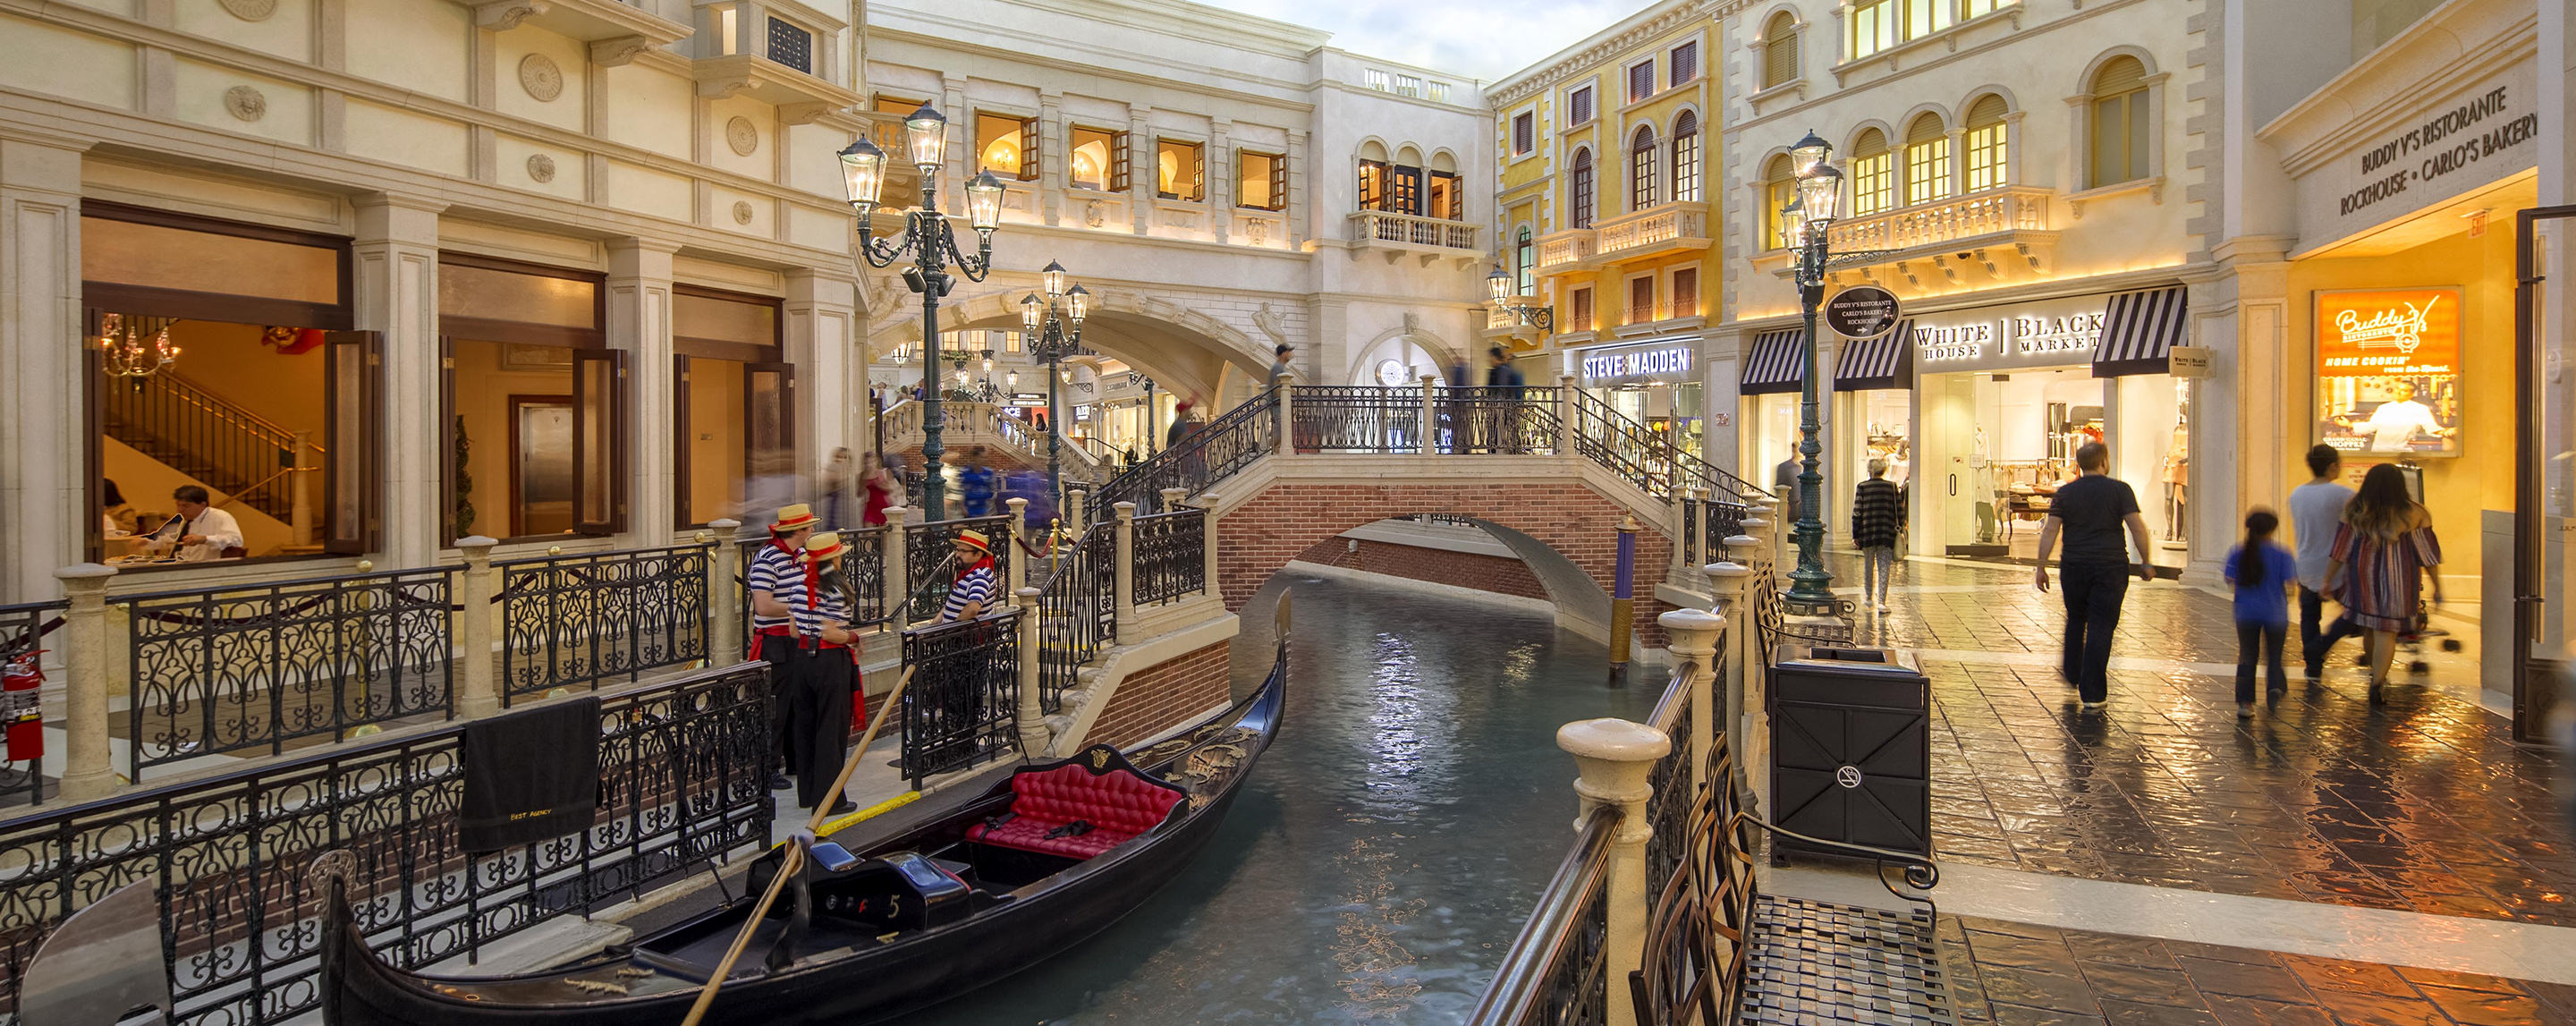 Shoppers relax, take in the beautiful Venetian architecture and enjoy a true one-of-a-kind experience floating down the Venetian's Grand Canal in an Italian gondola.